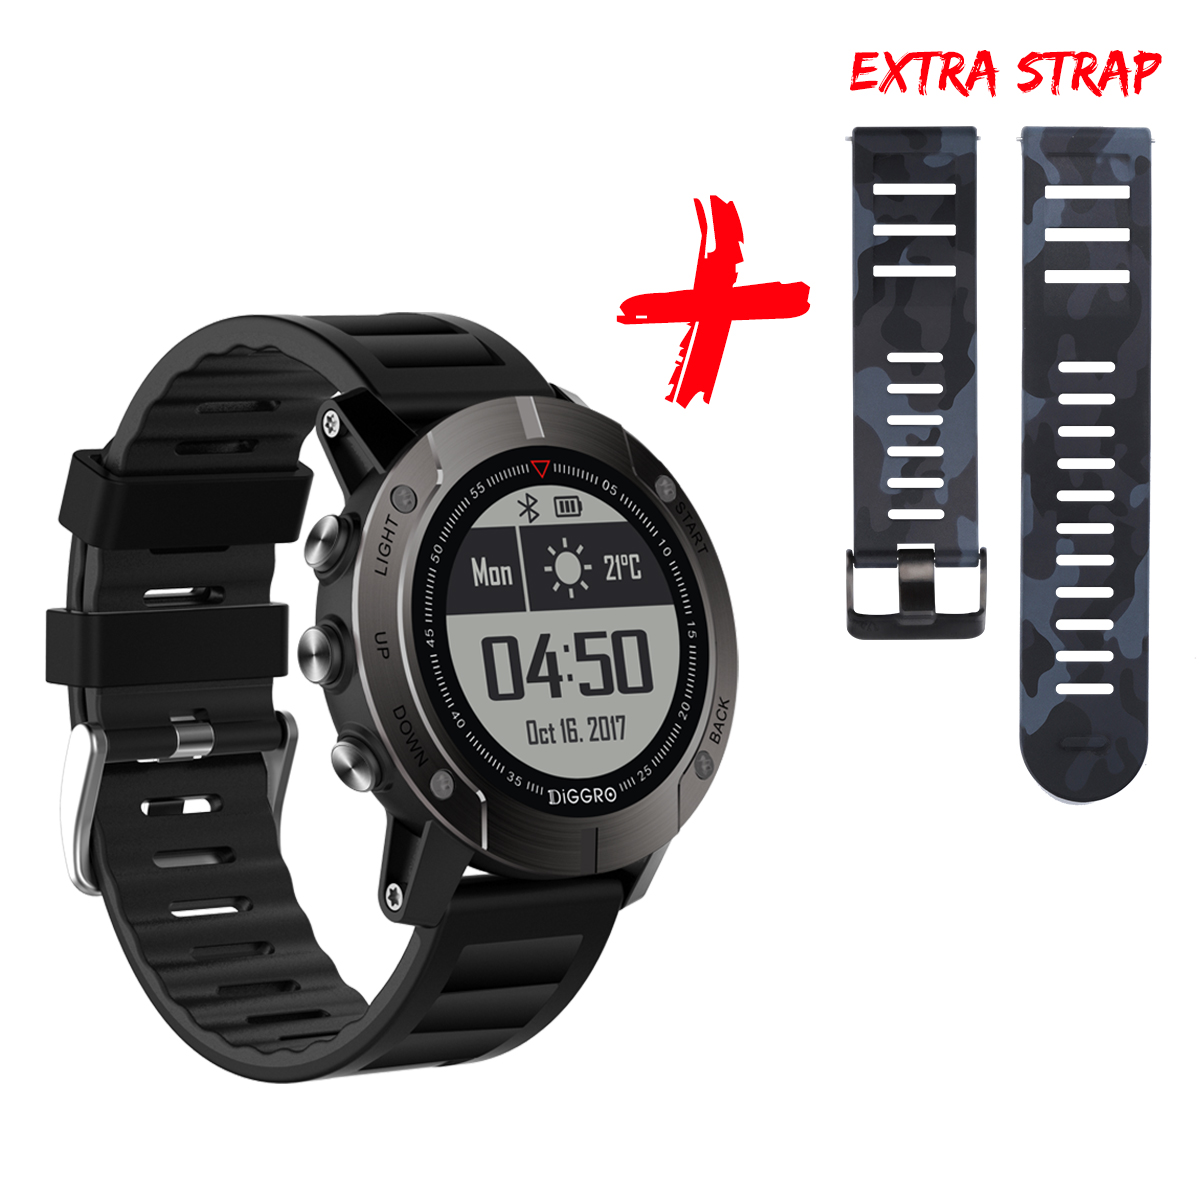 Diggro DI08 GPS Smart Watch, Outdoor Fitness Tracker 30 Meter IP68 Waterproof Backlight Multiple Sport Modes Heart Rate Monitor for Android/IOS, Black